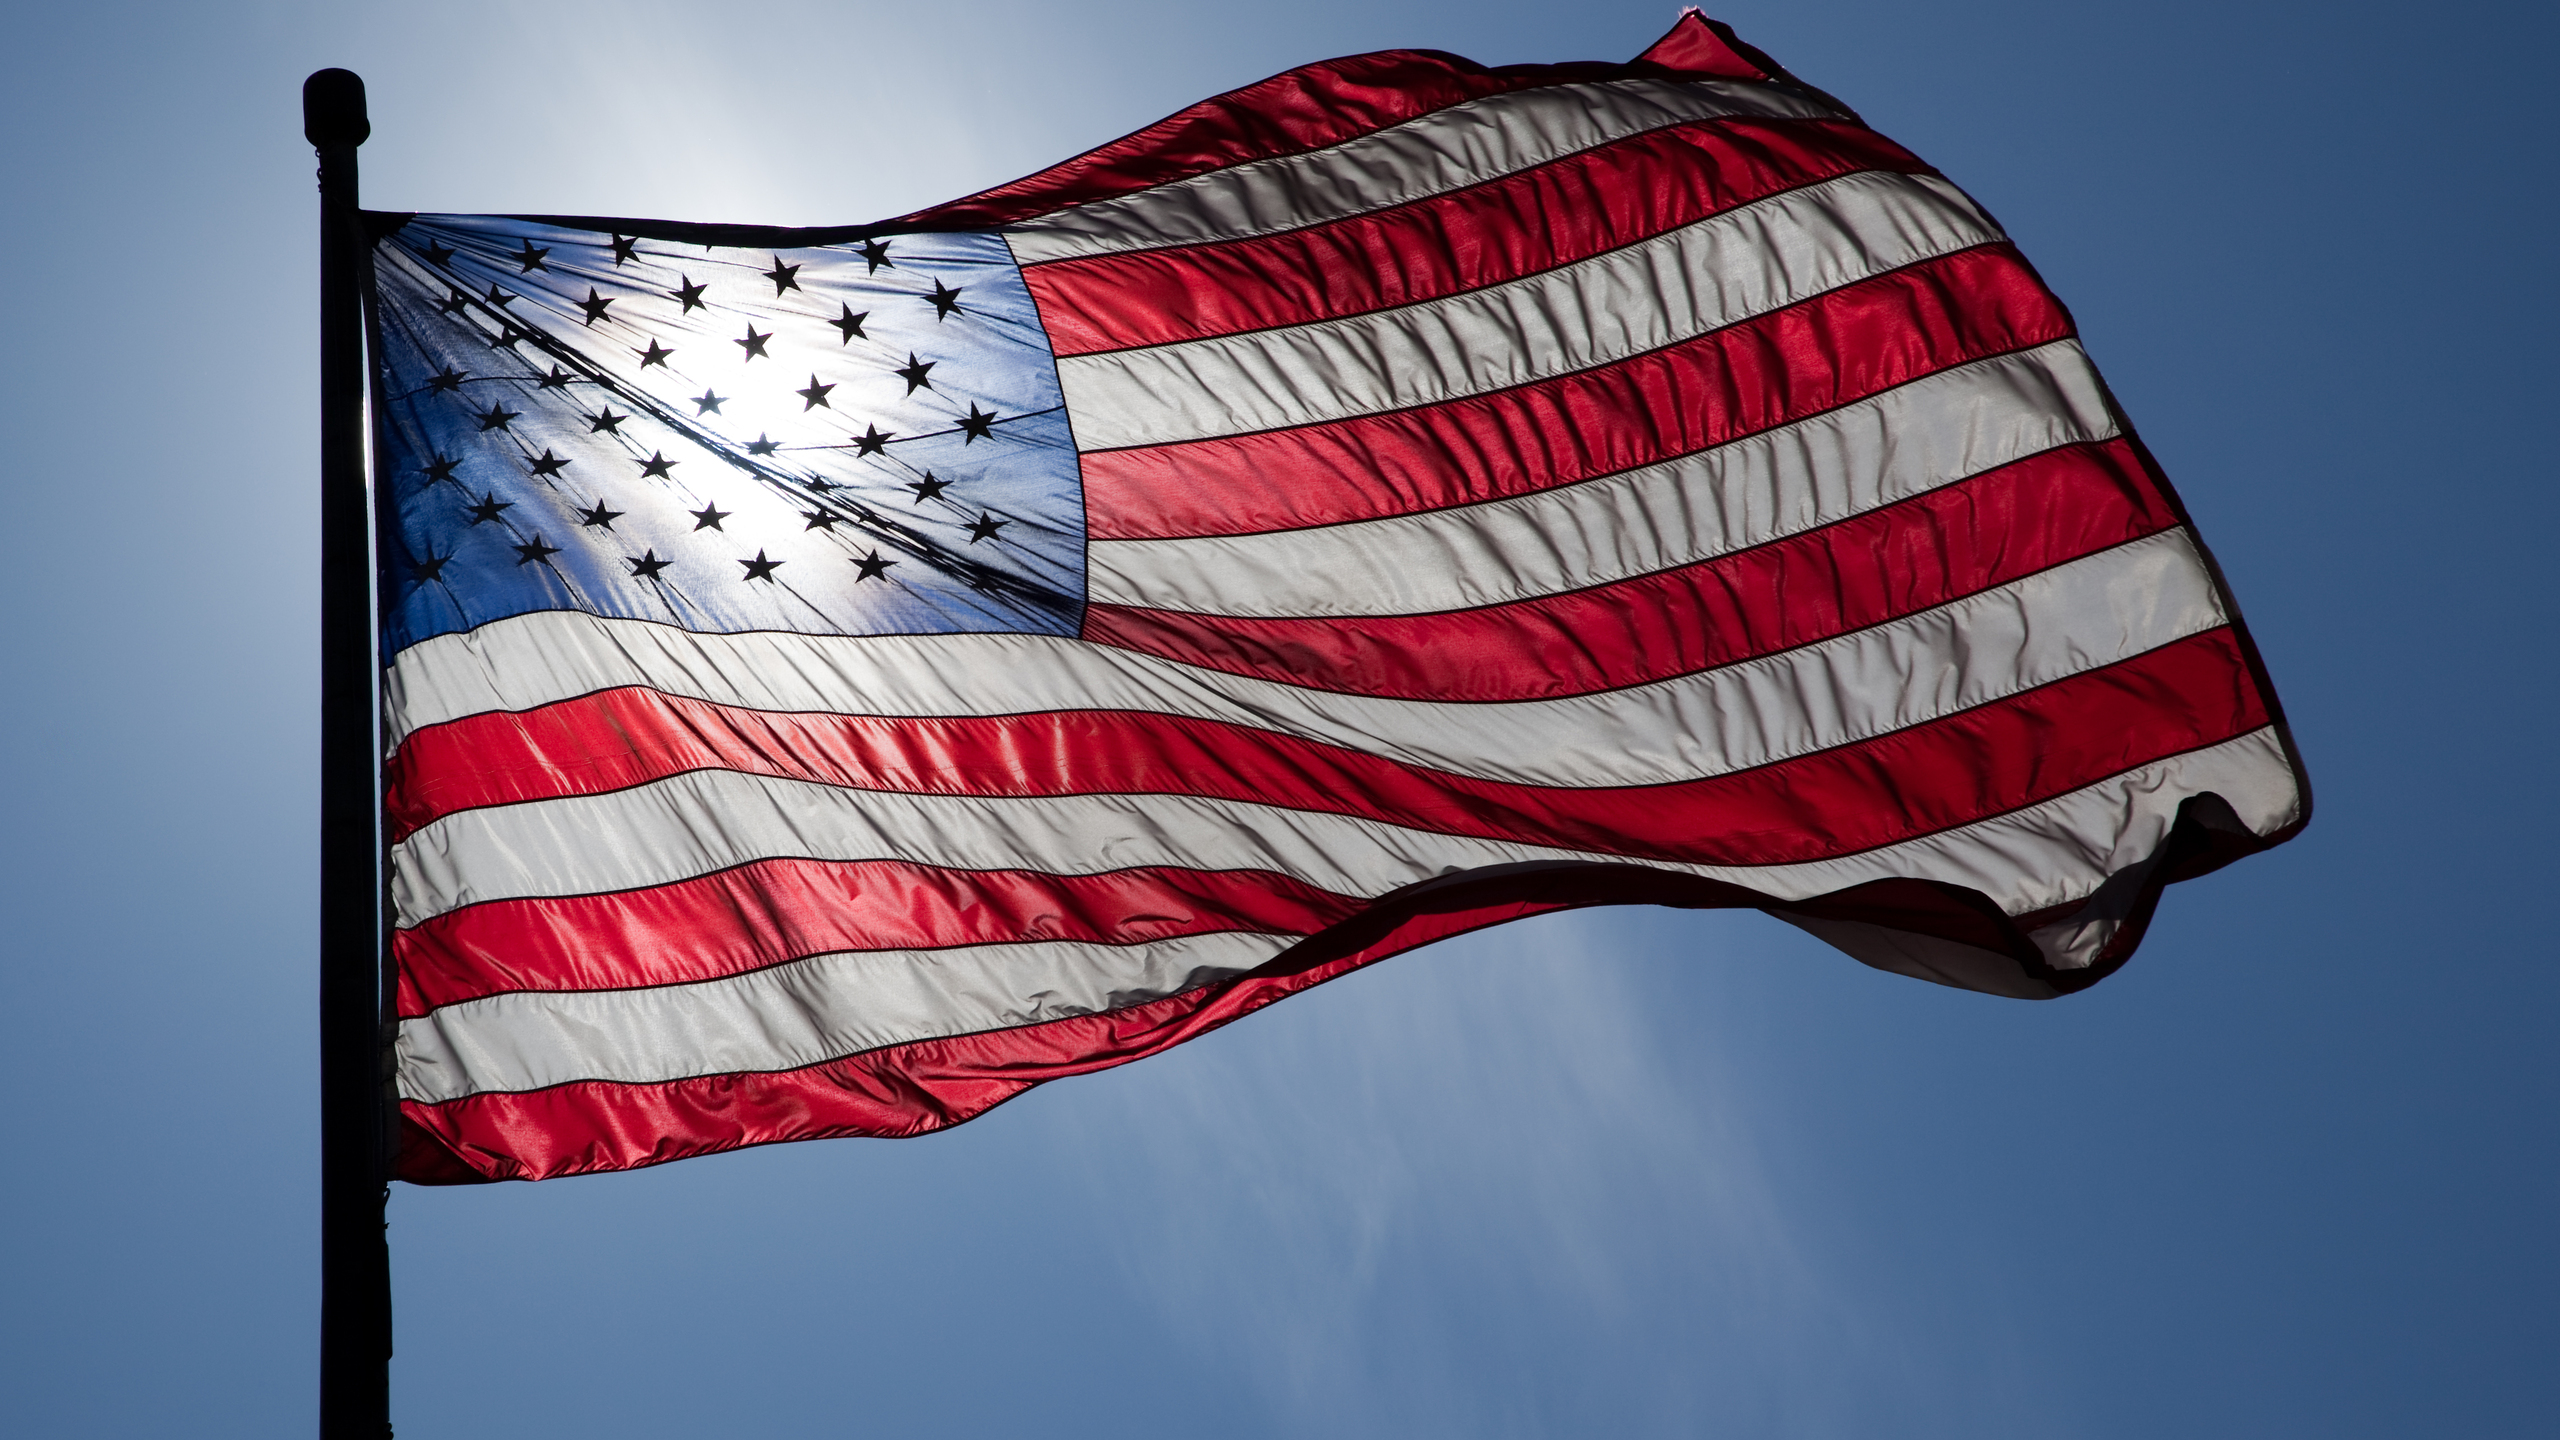 2560x1440 American Flag 1440p Resolution Hd 4k Wallpapers Images